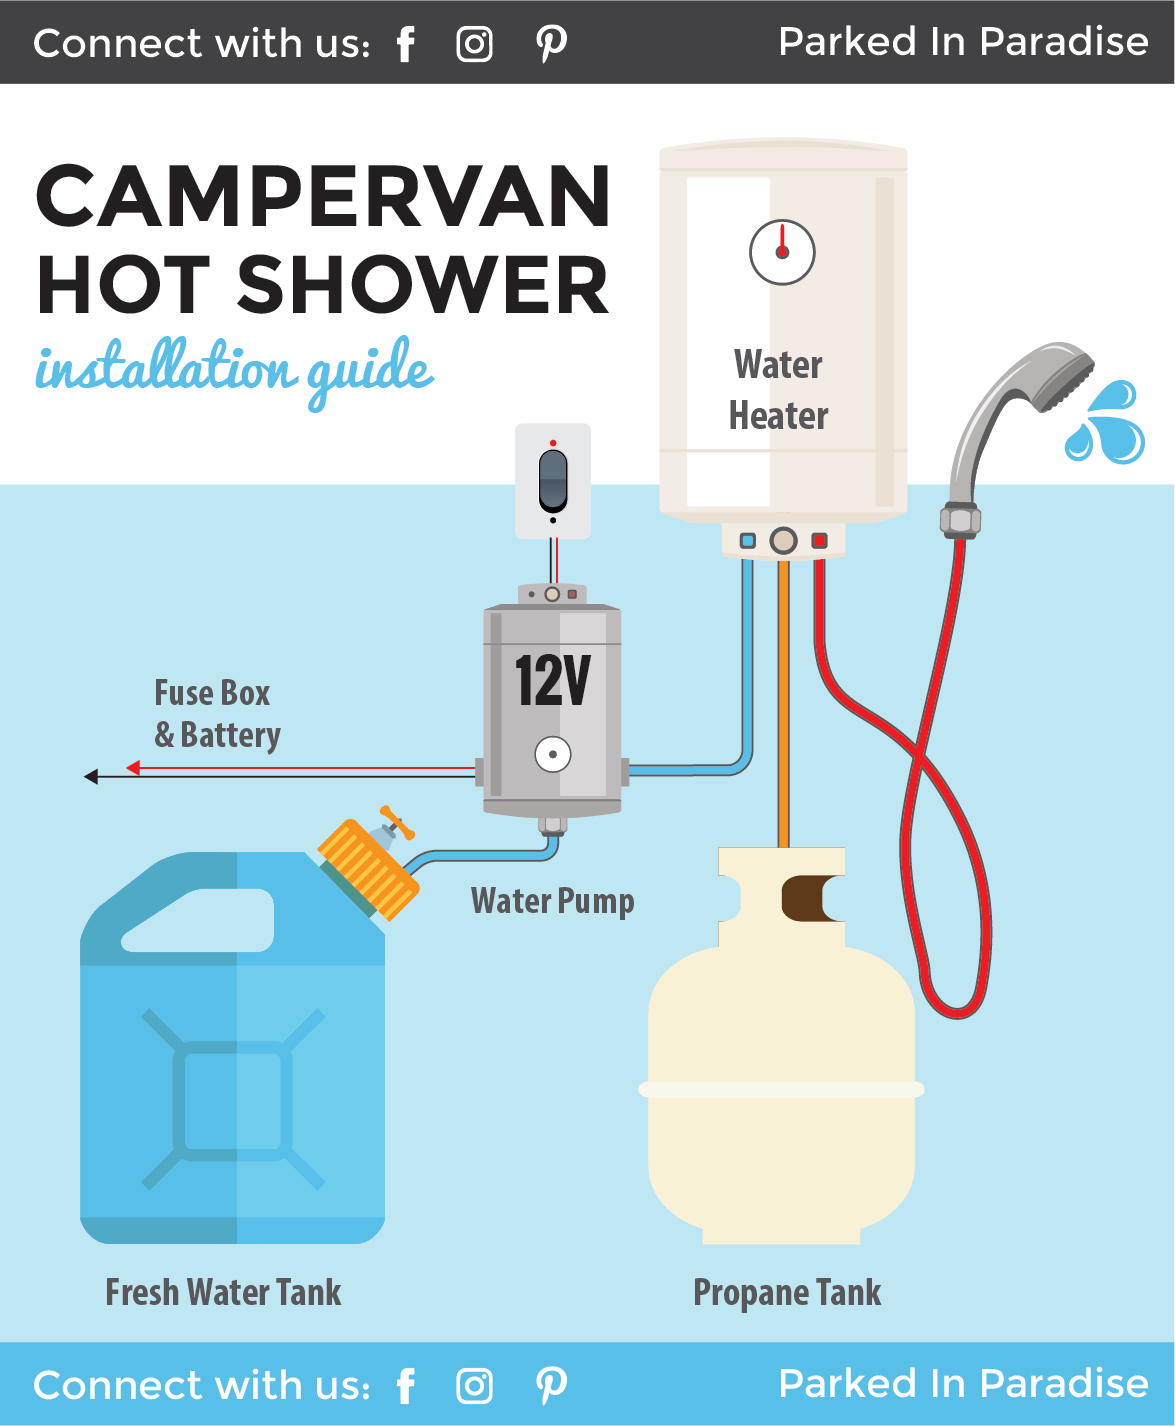 installing a portable 12v water heater in a camper van